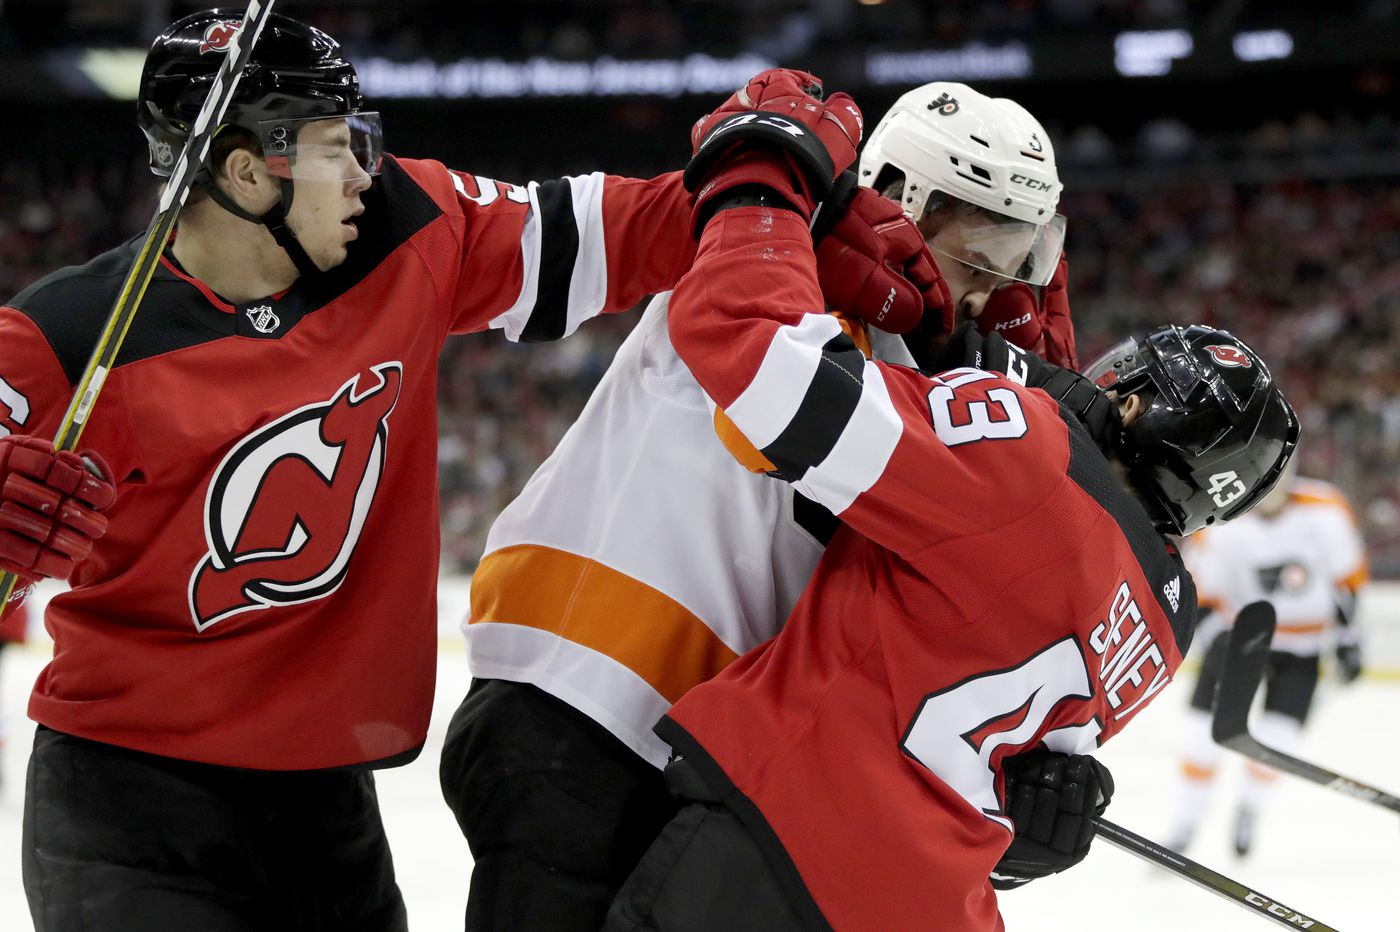 Flyers lose to Devils in what appears to be a race to the bottom of the NHL standings